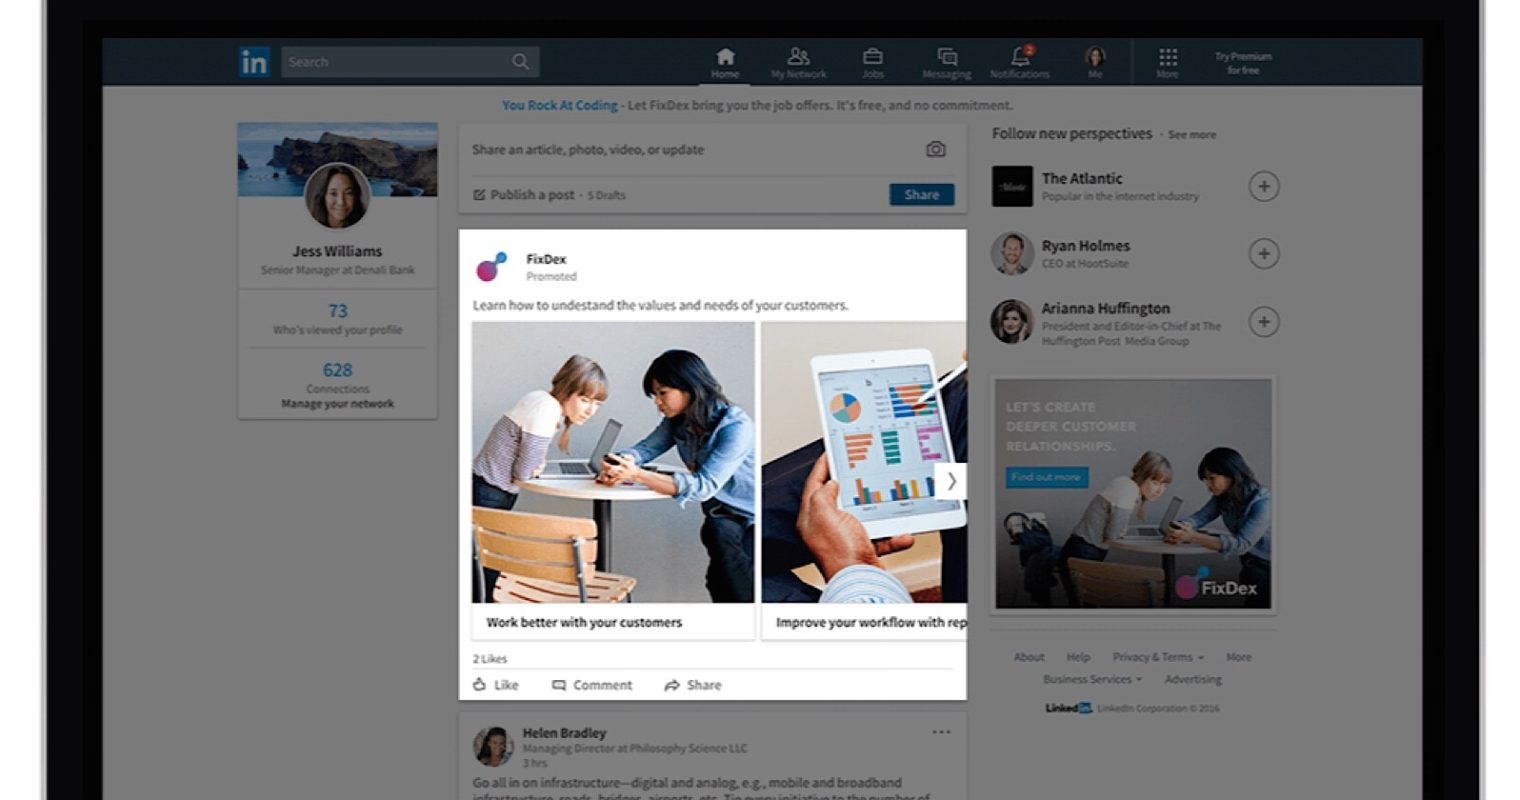 LinkedIn Expands Sponsored Content Offerings With Carousel Ads